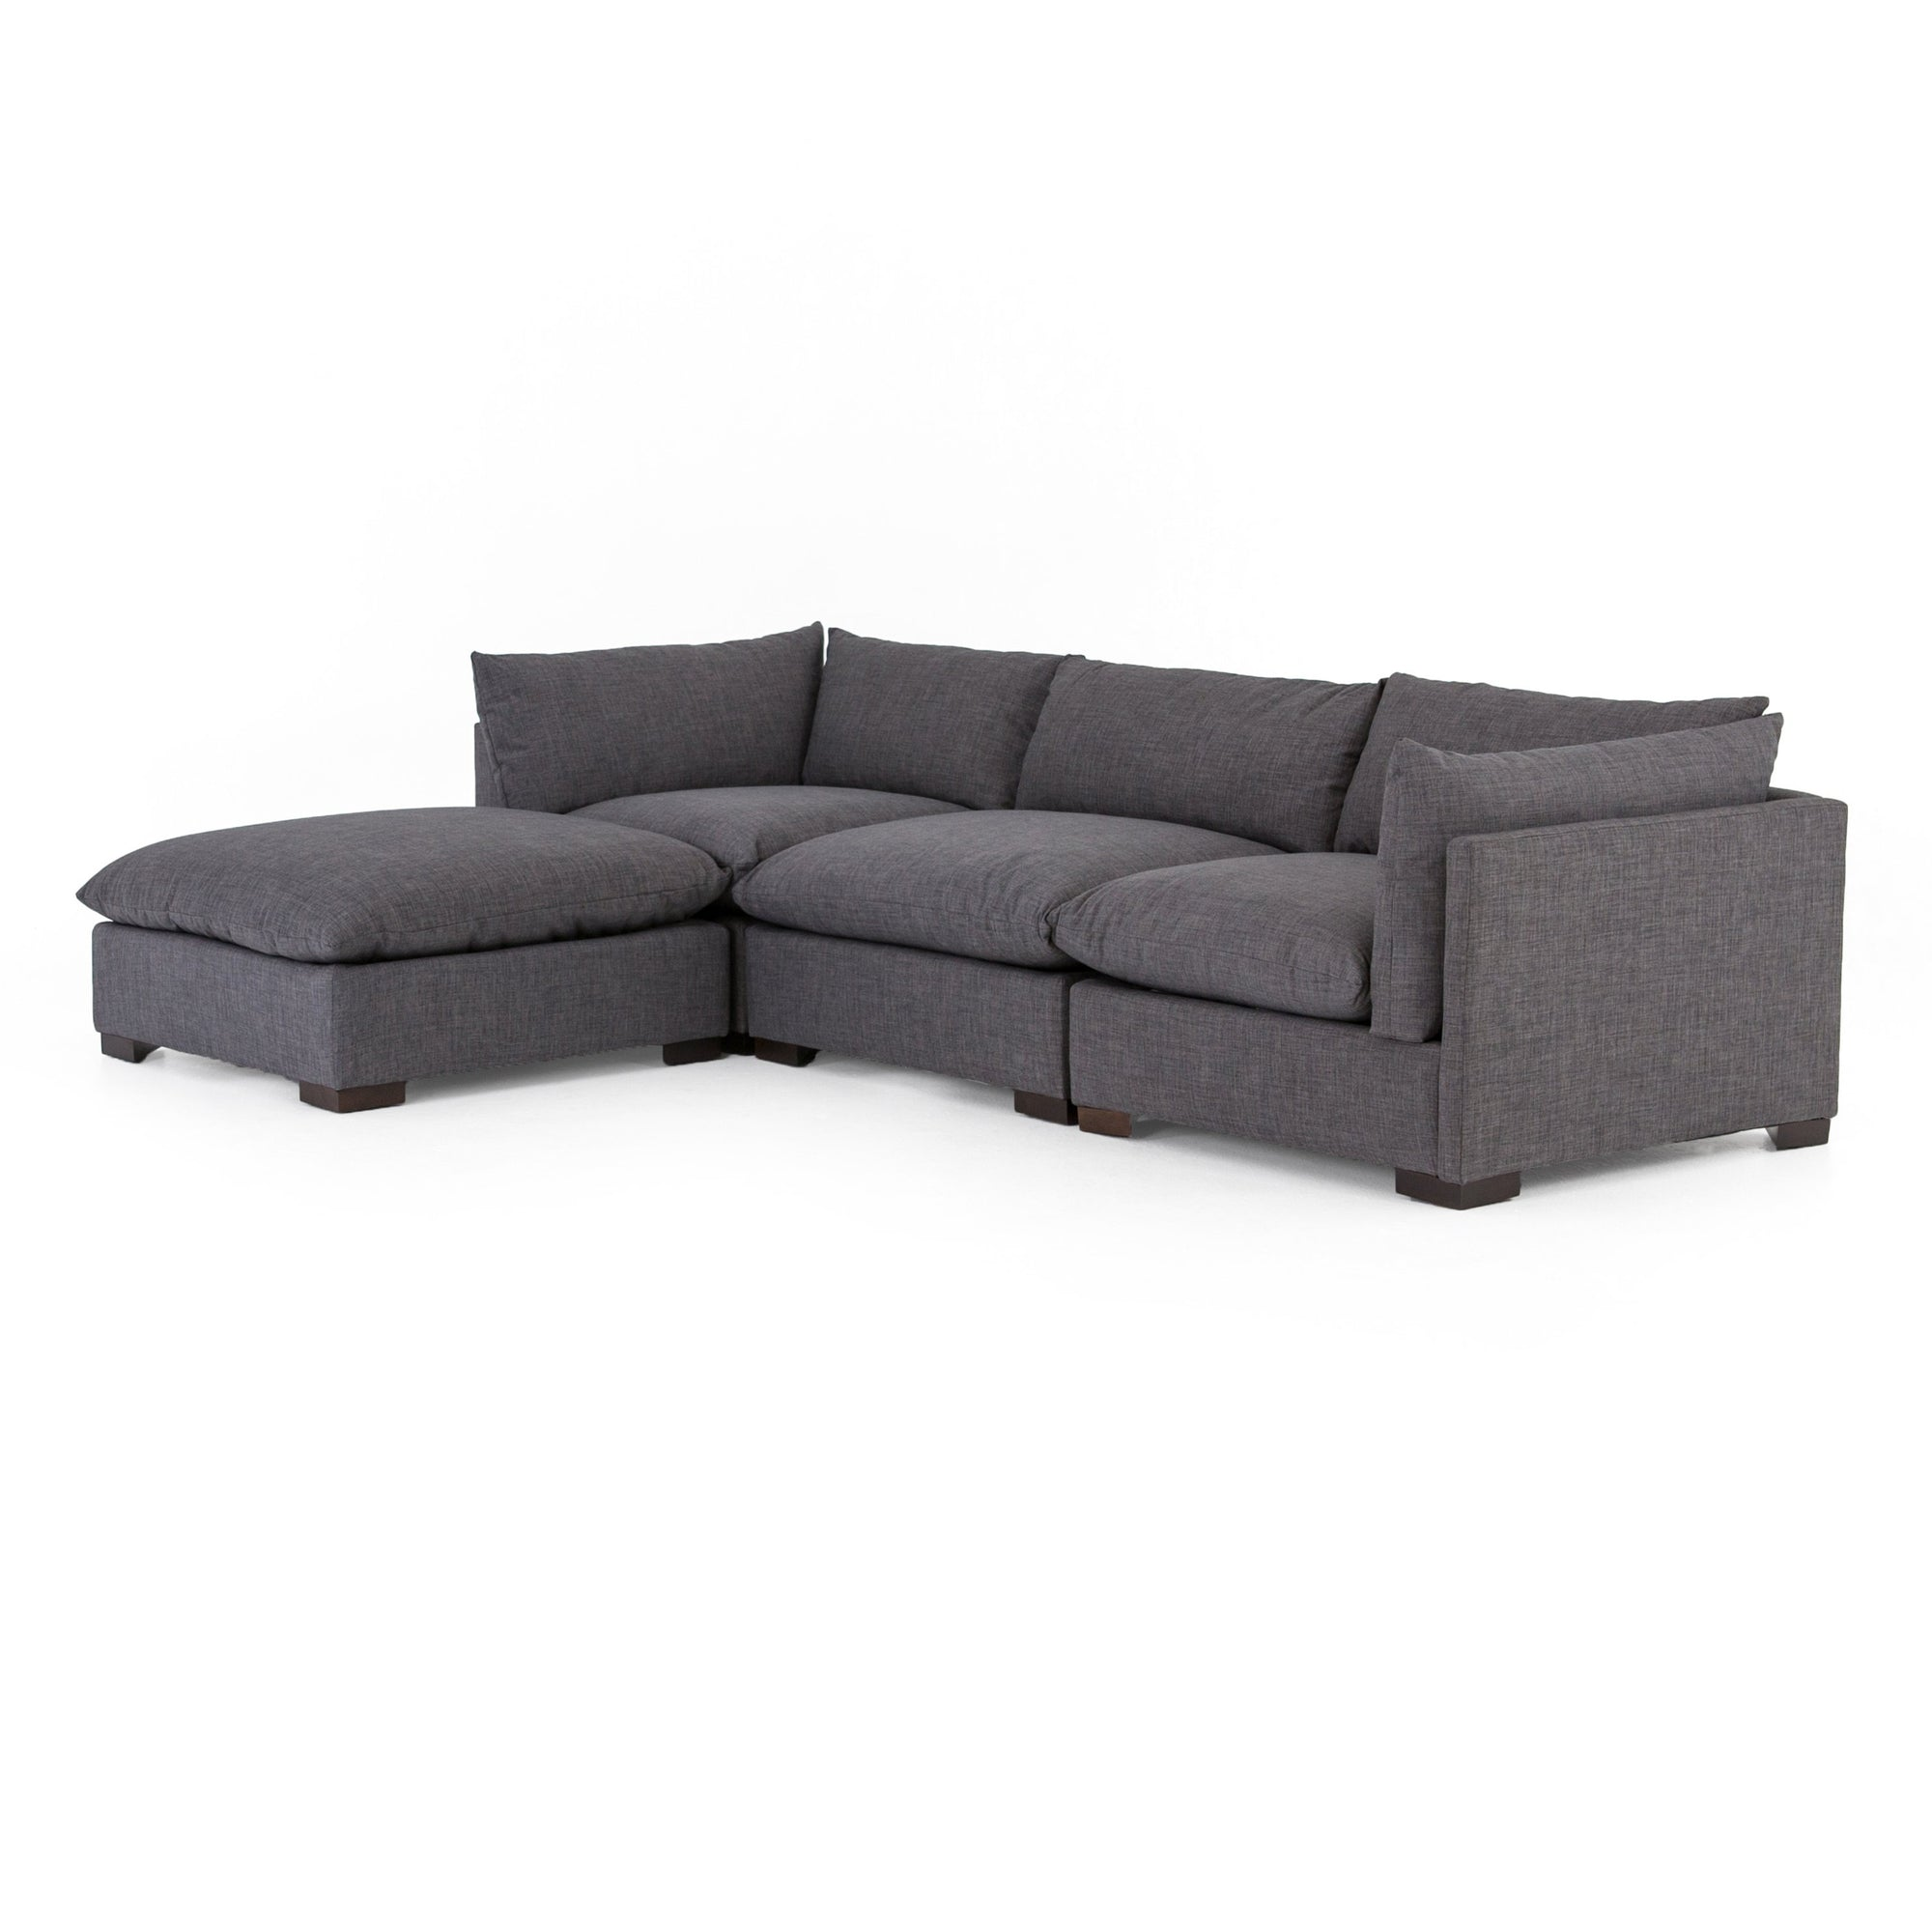 Westwood 3 - Pc Sectional W/ Ottoman - Bc